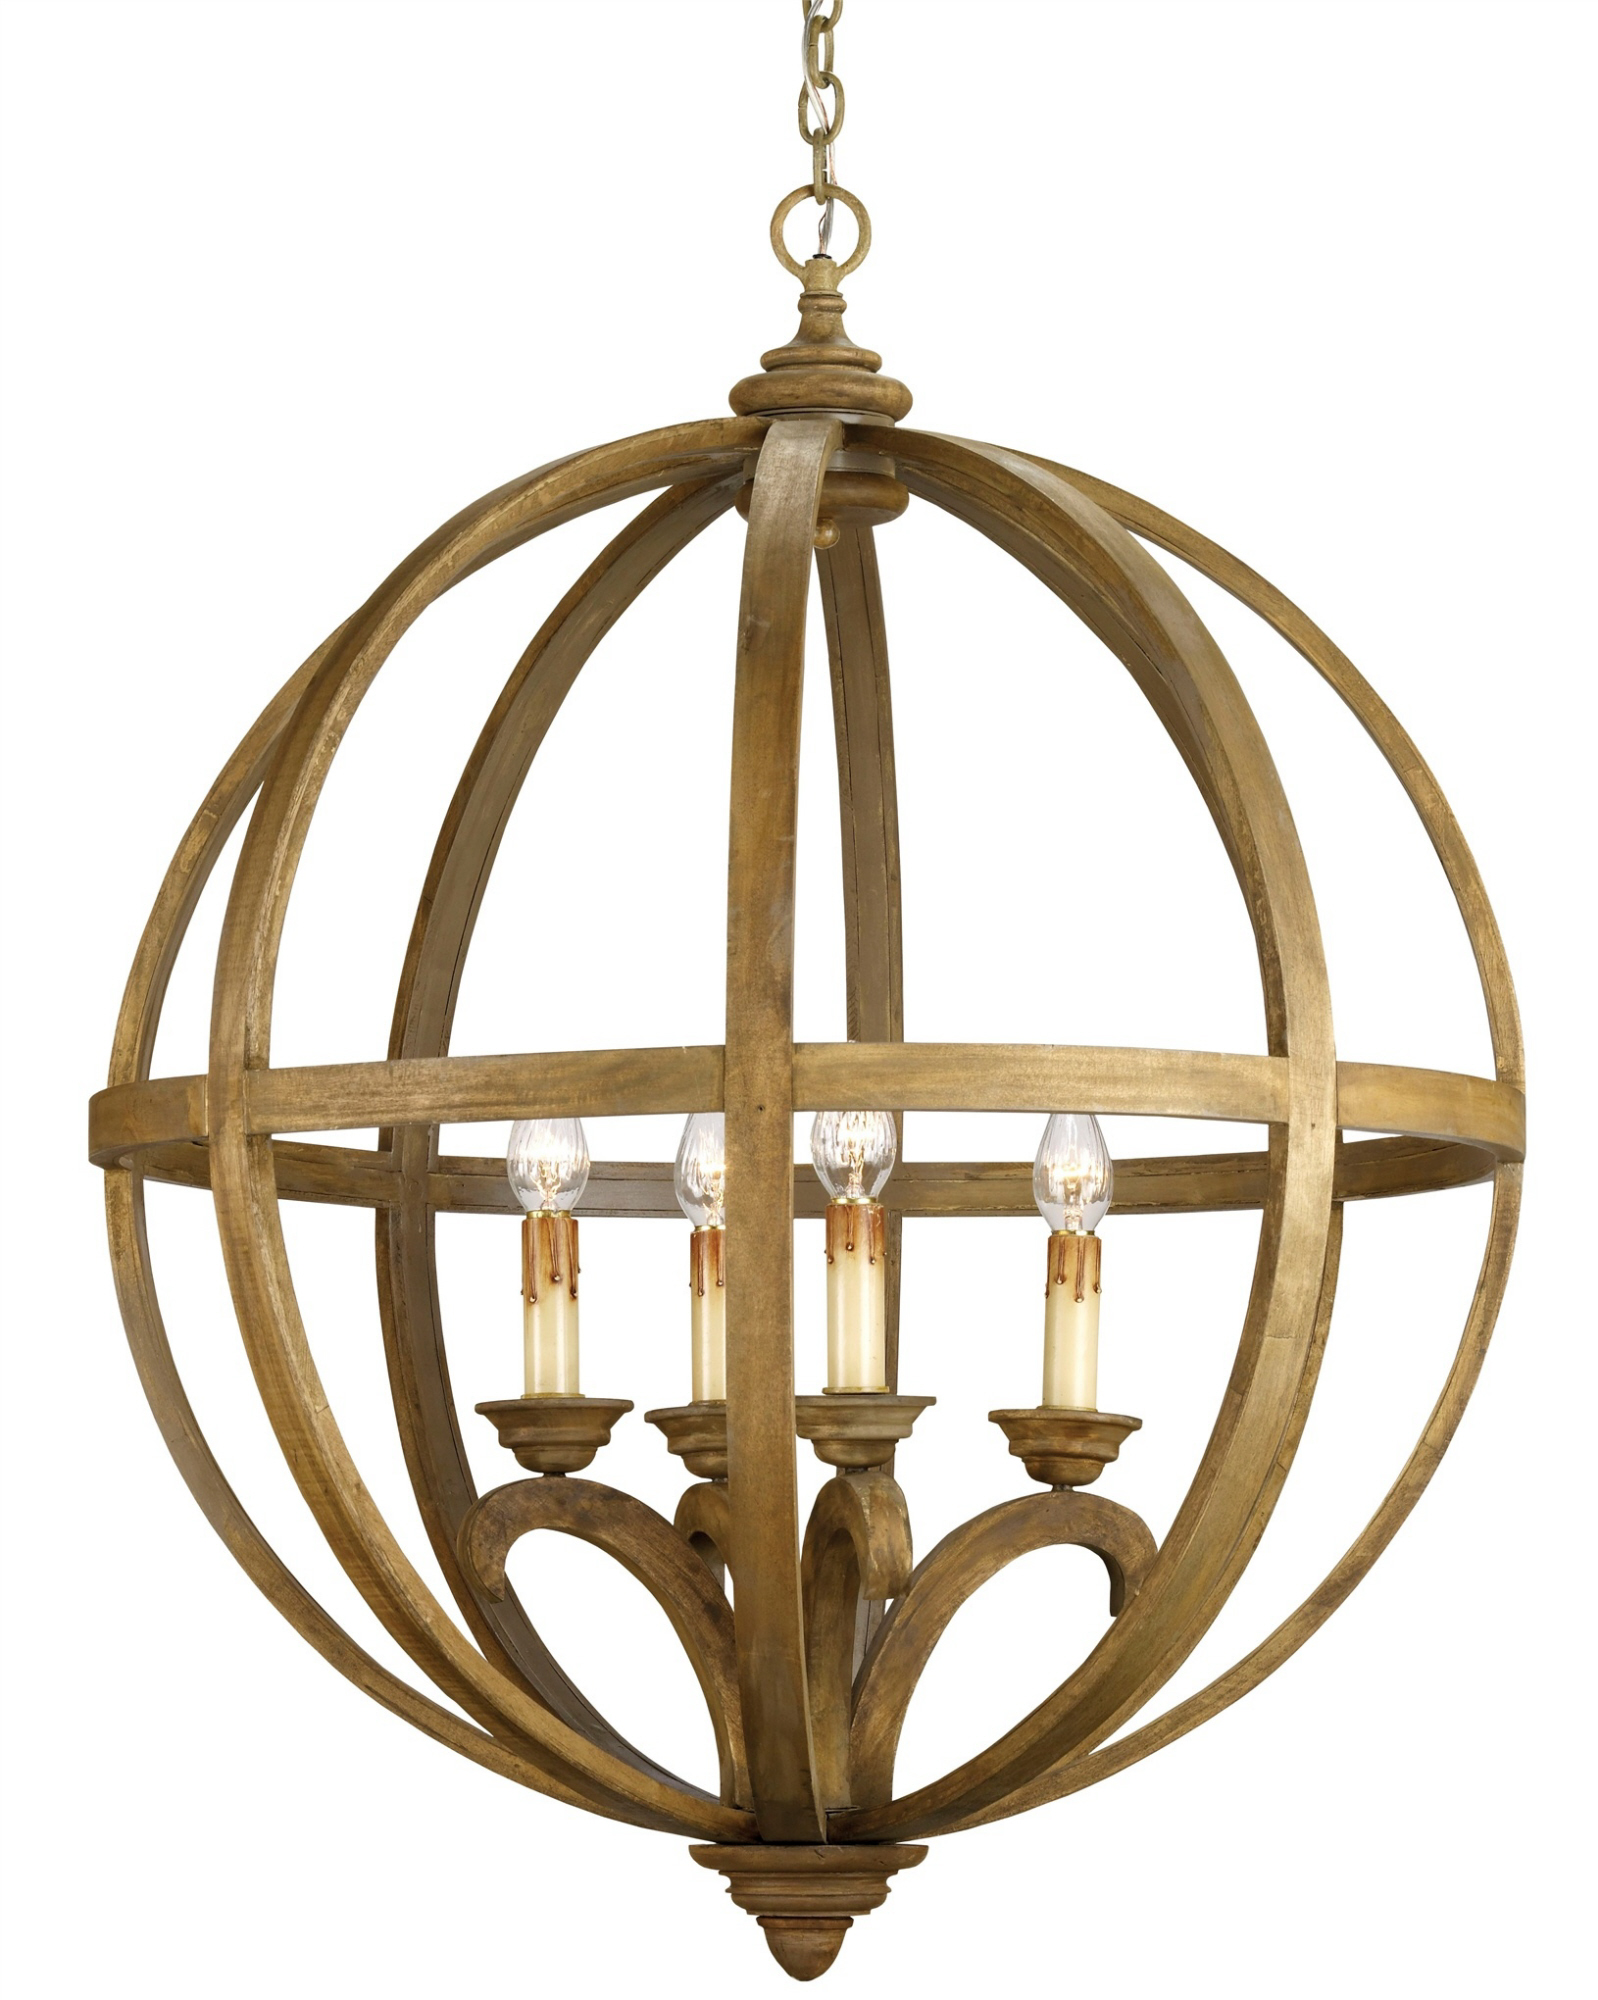 Amazing sphere chandelier metal orb chandelier with interesting Cheap Price for your Home Lighting